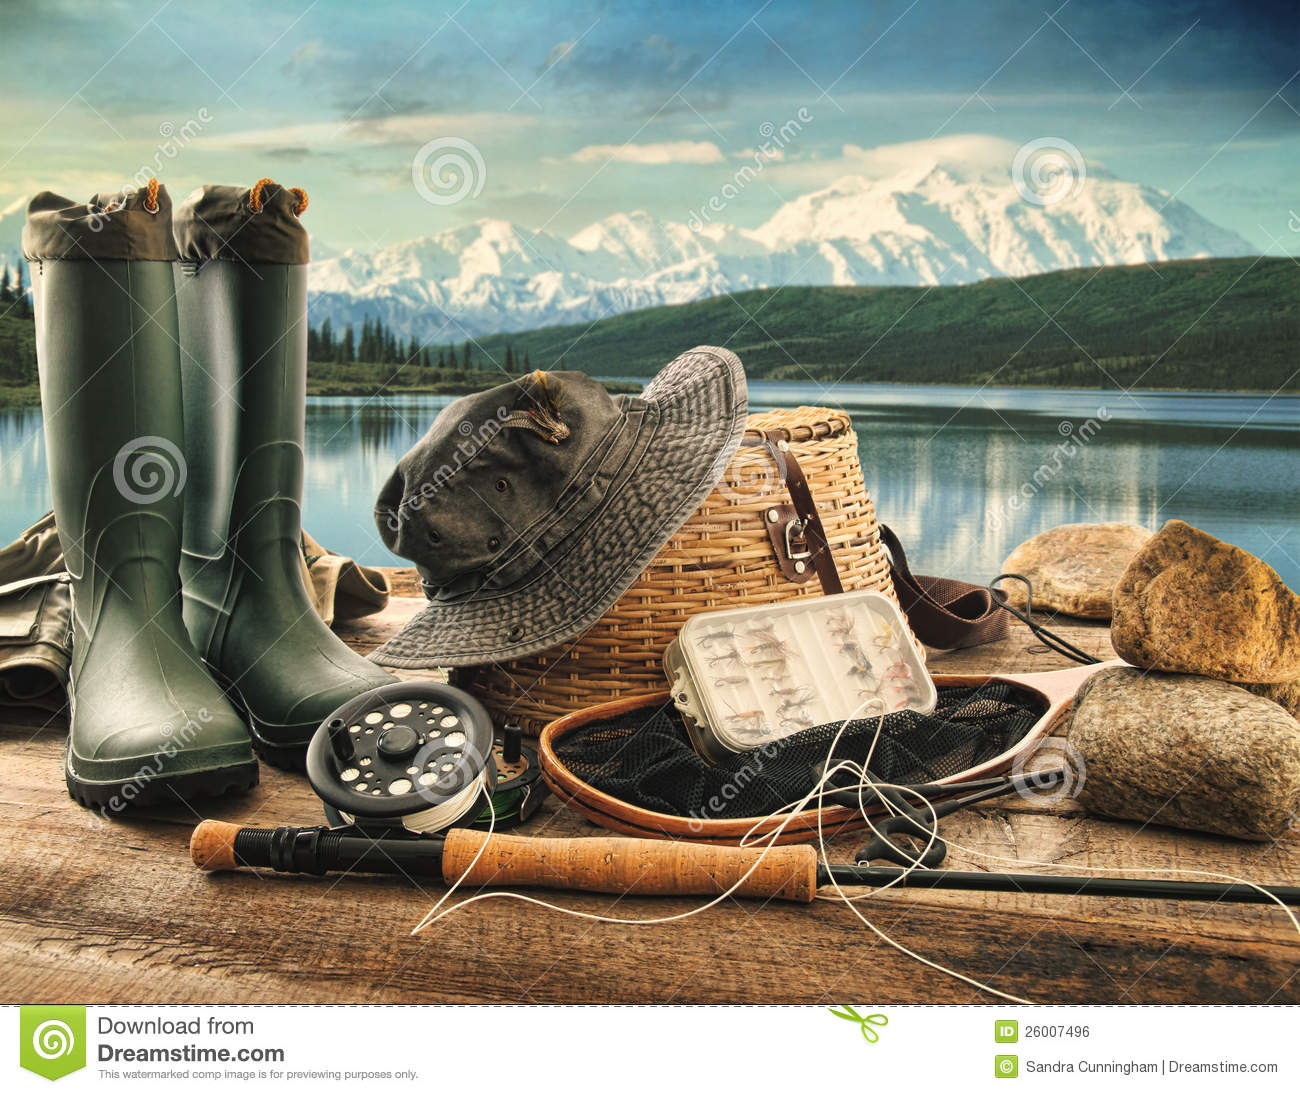 Fly fishing equipment on deck of mountains